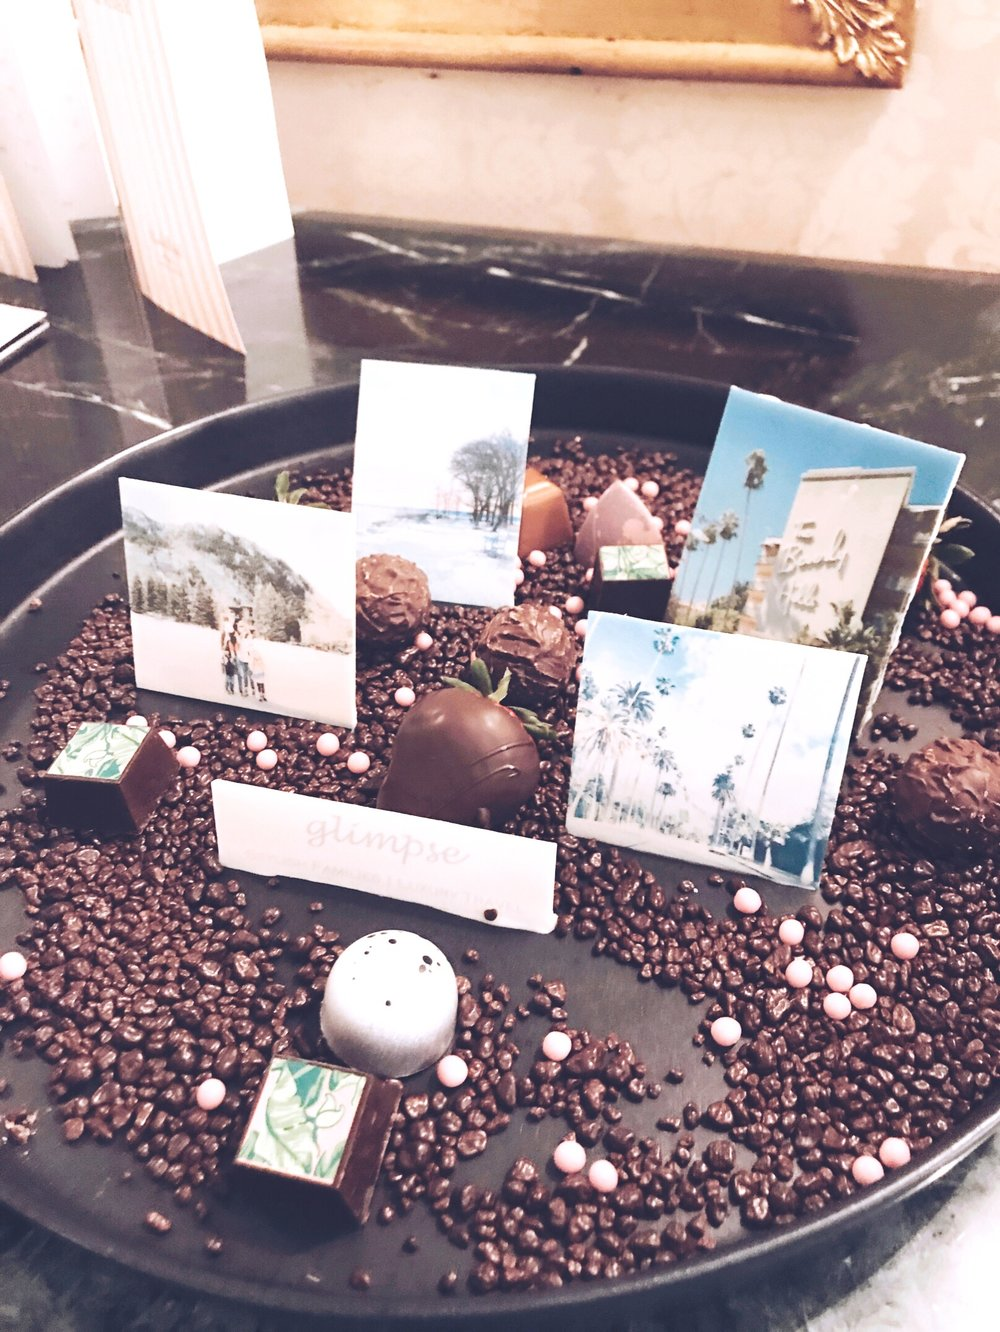 My welcome gift in our bungalow - images from my instagram page on chocolate!